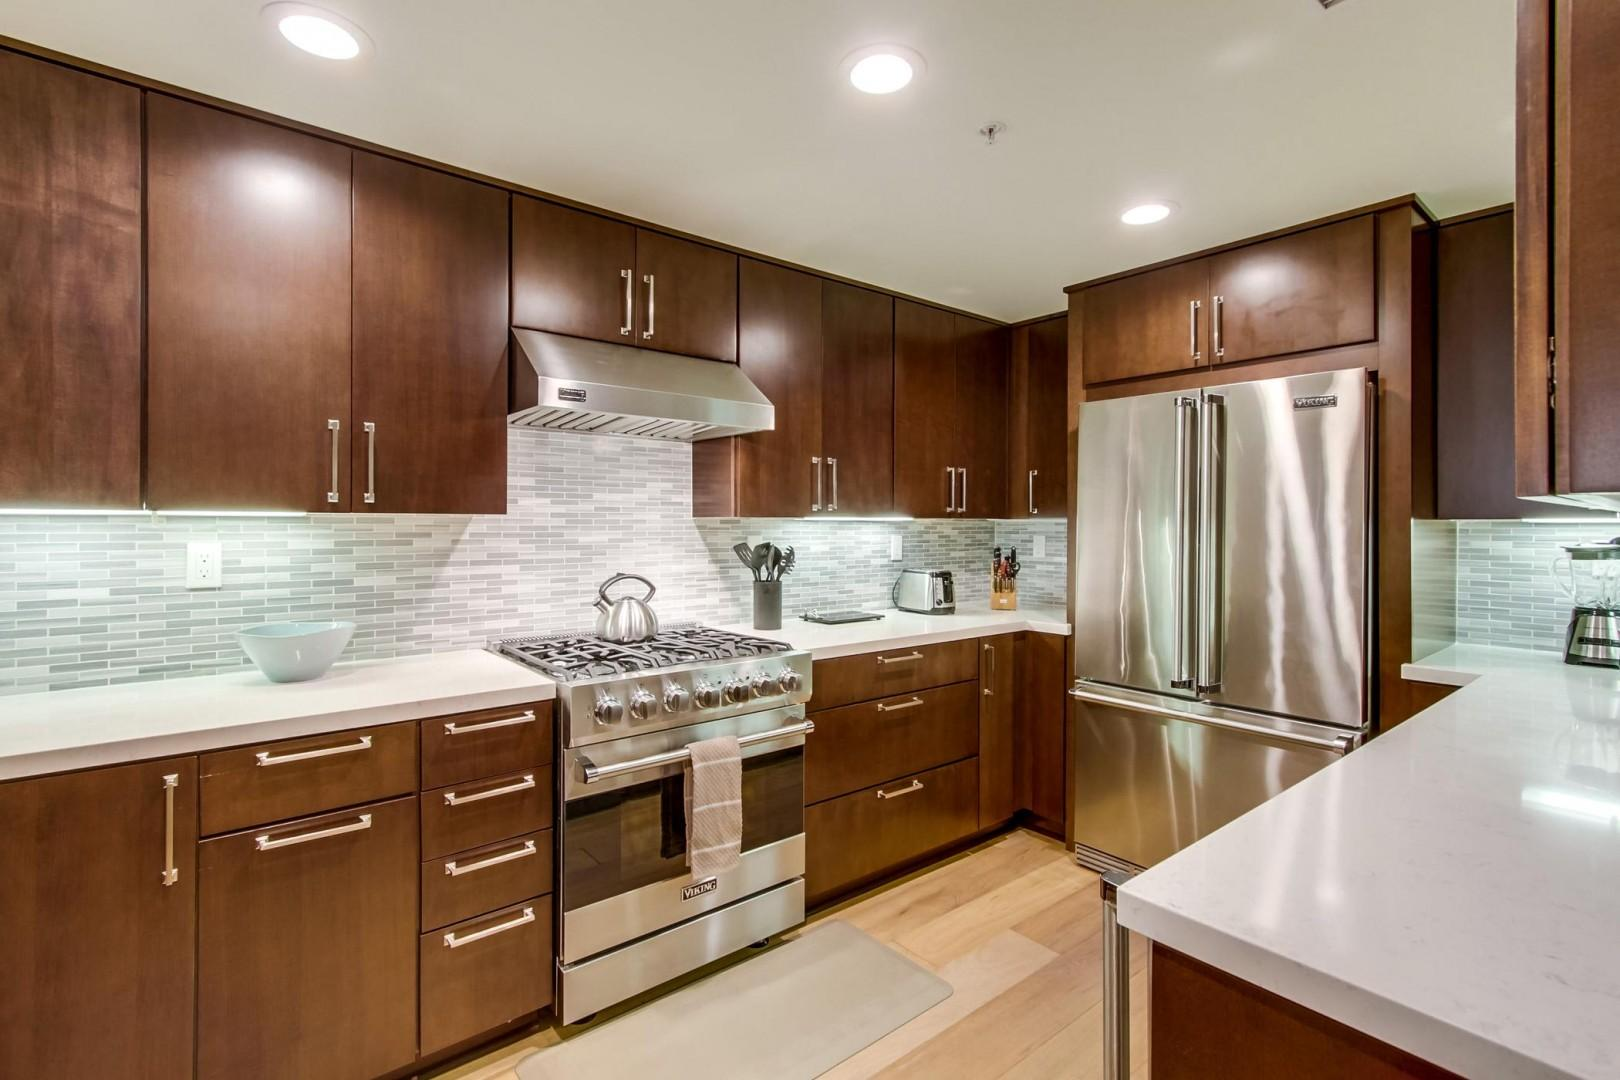 Beautifully appointed gourmet kitchen with Caesar stone counters